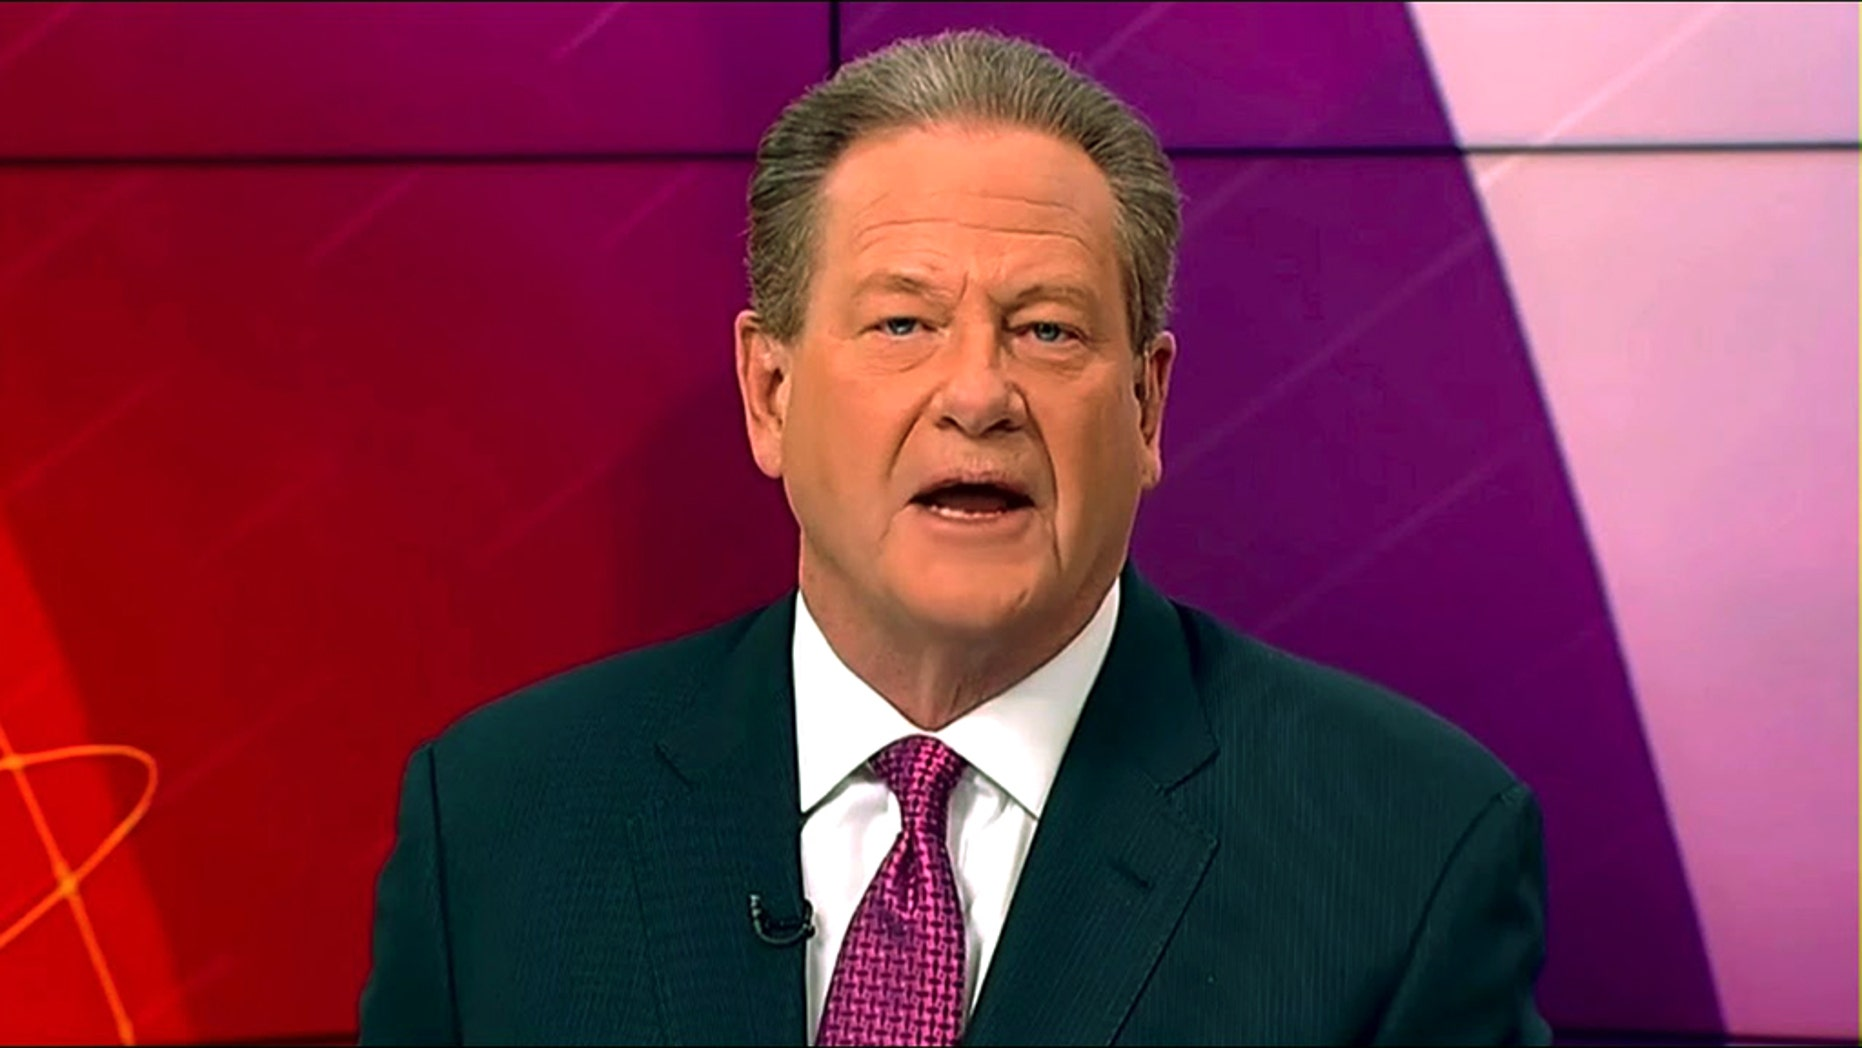 Ed Schultz hosted a show on MSNBC from 2009 until 2015.